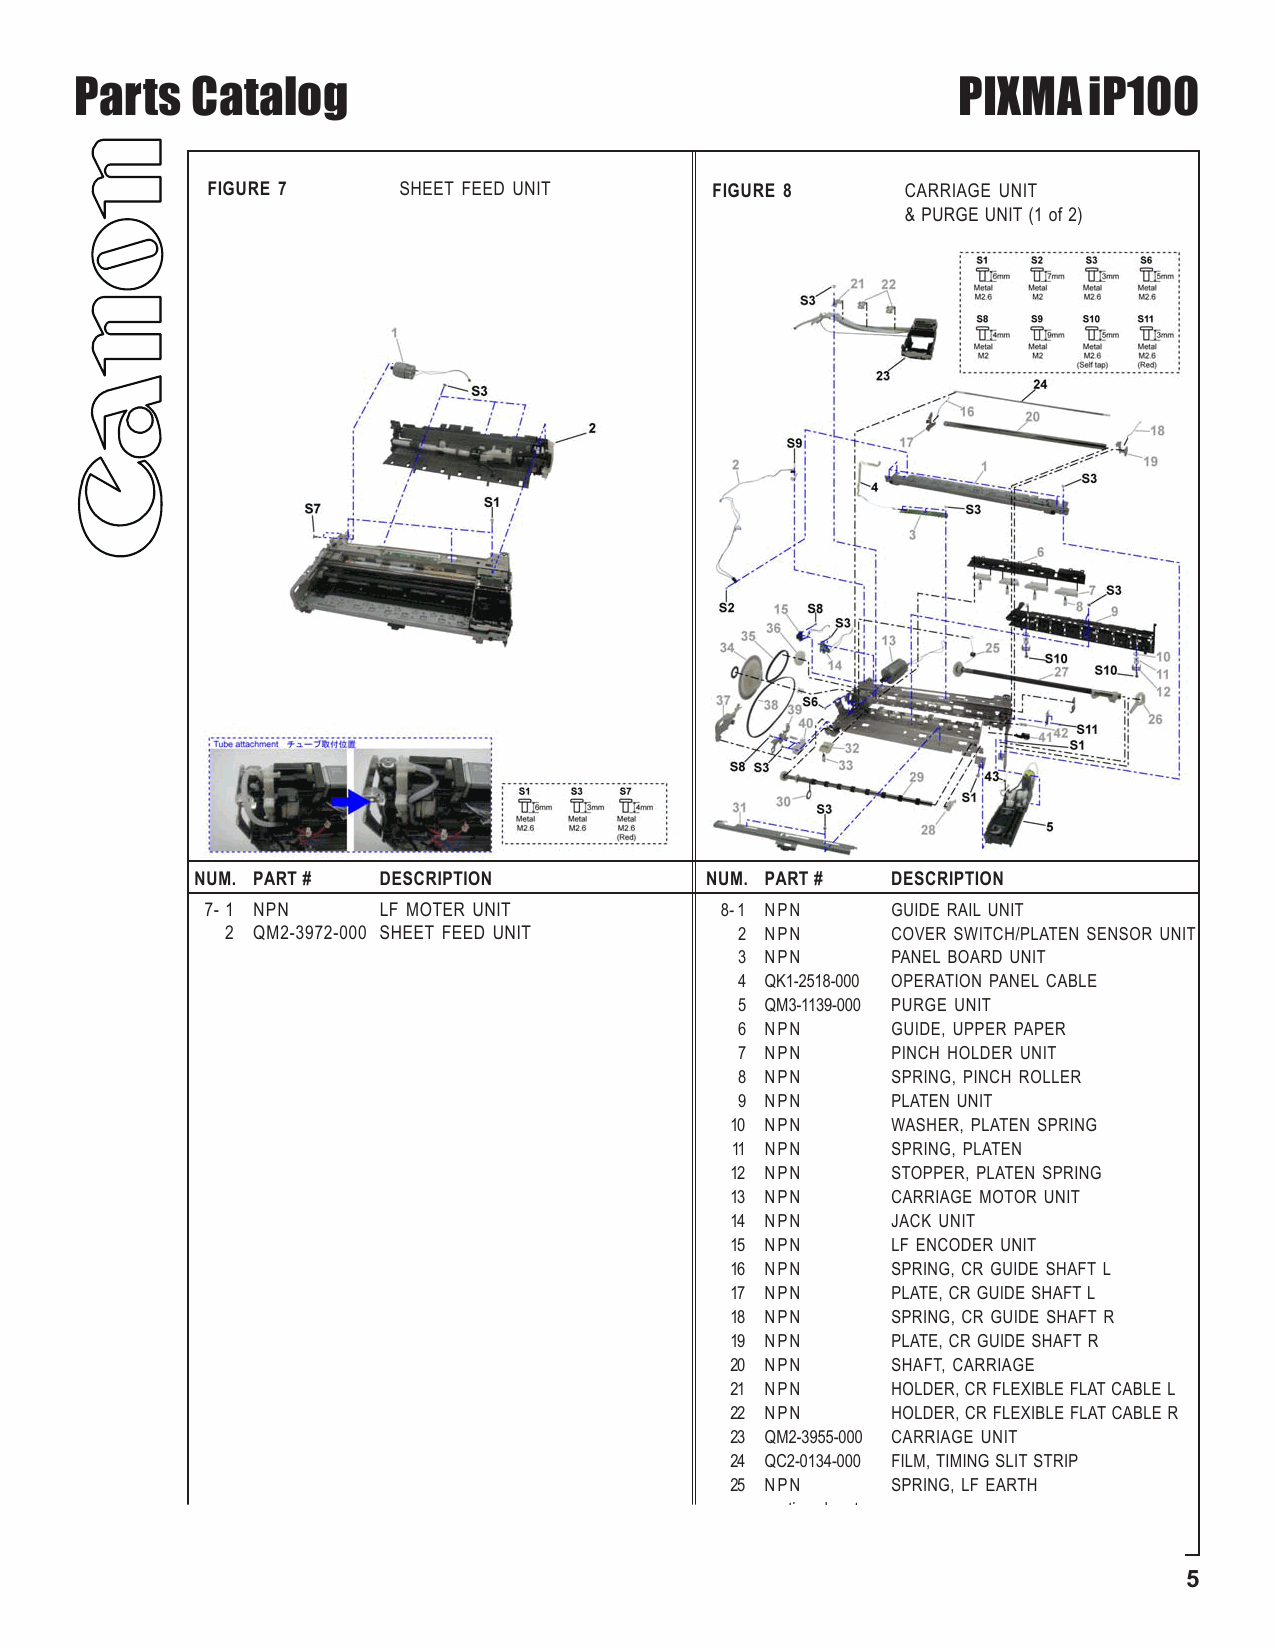 Download free pdf for canon pixma ip100 printer manual.